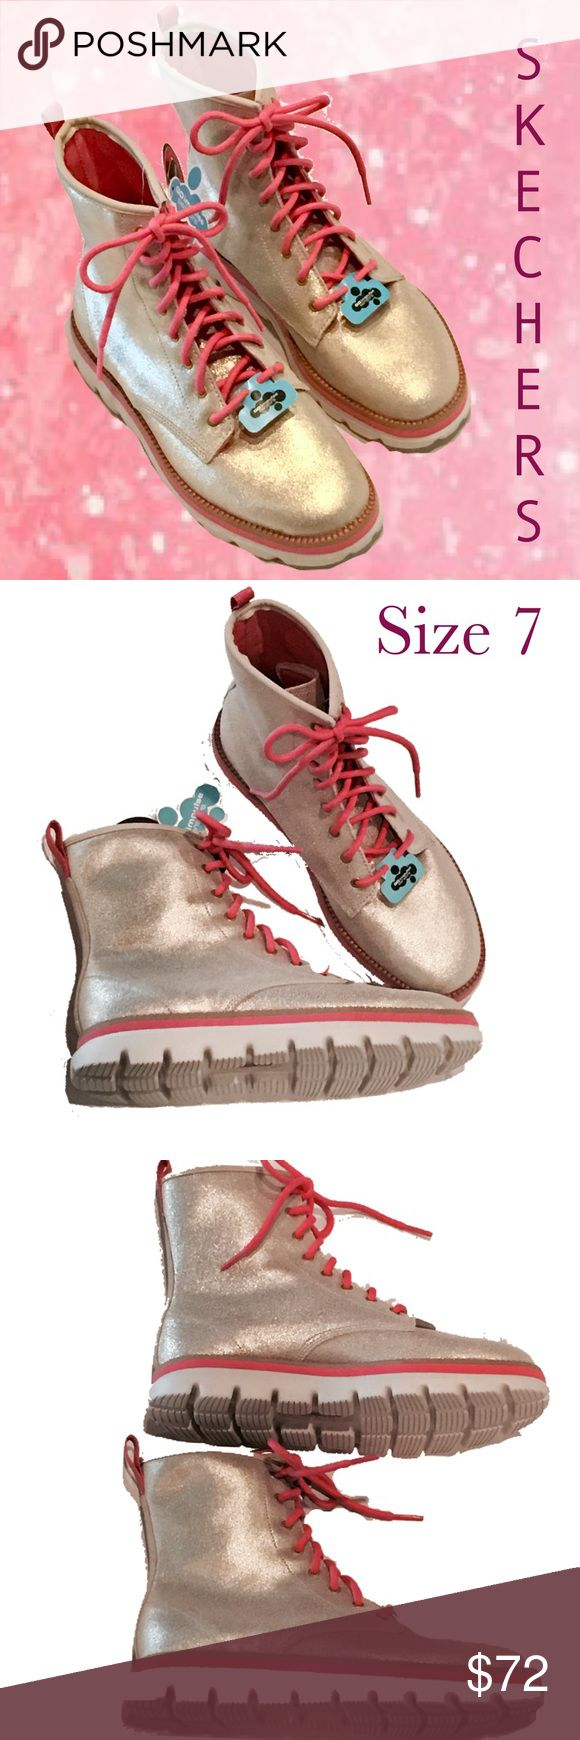 SKECHERS NWT On-The-Go Metallic Gold Hi Tops ~ 7 NWT SKECHERS On-The-Go metallic gold hi tops, size 7 Skechers Shoes Athletic Shoes